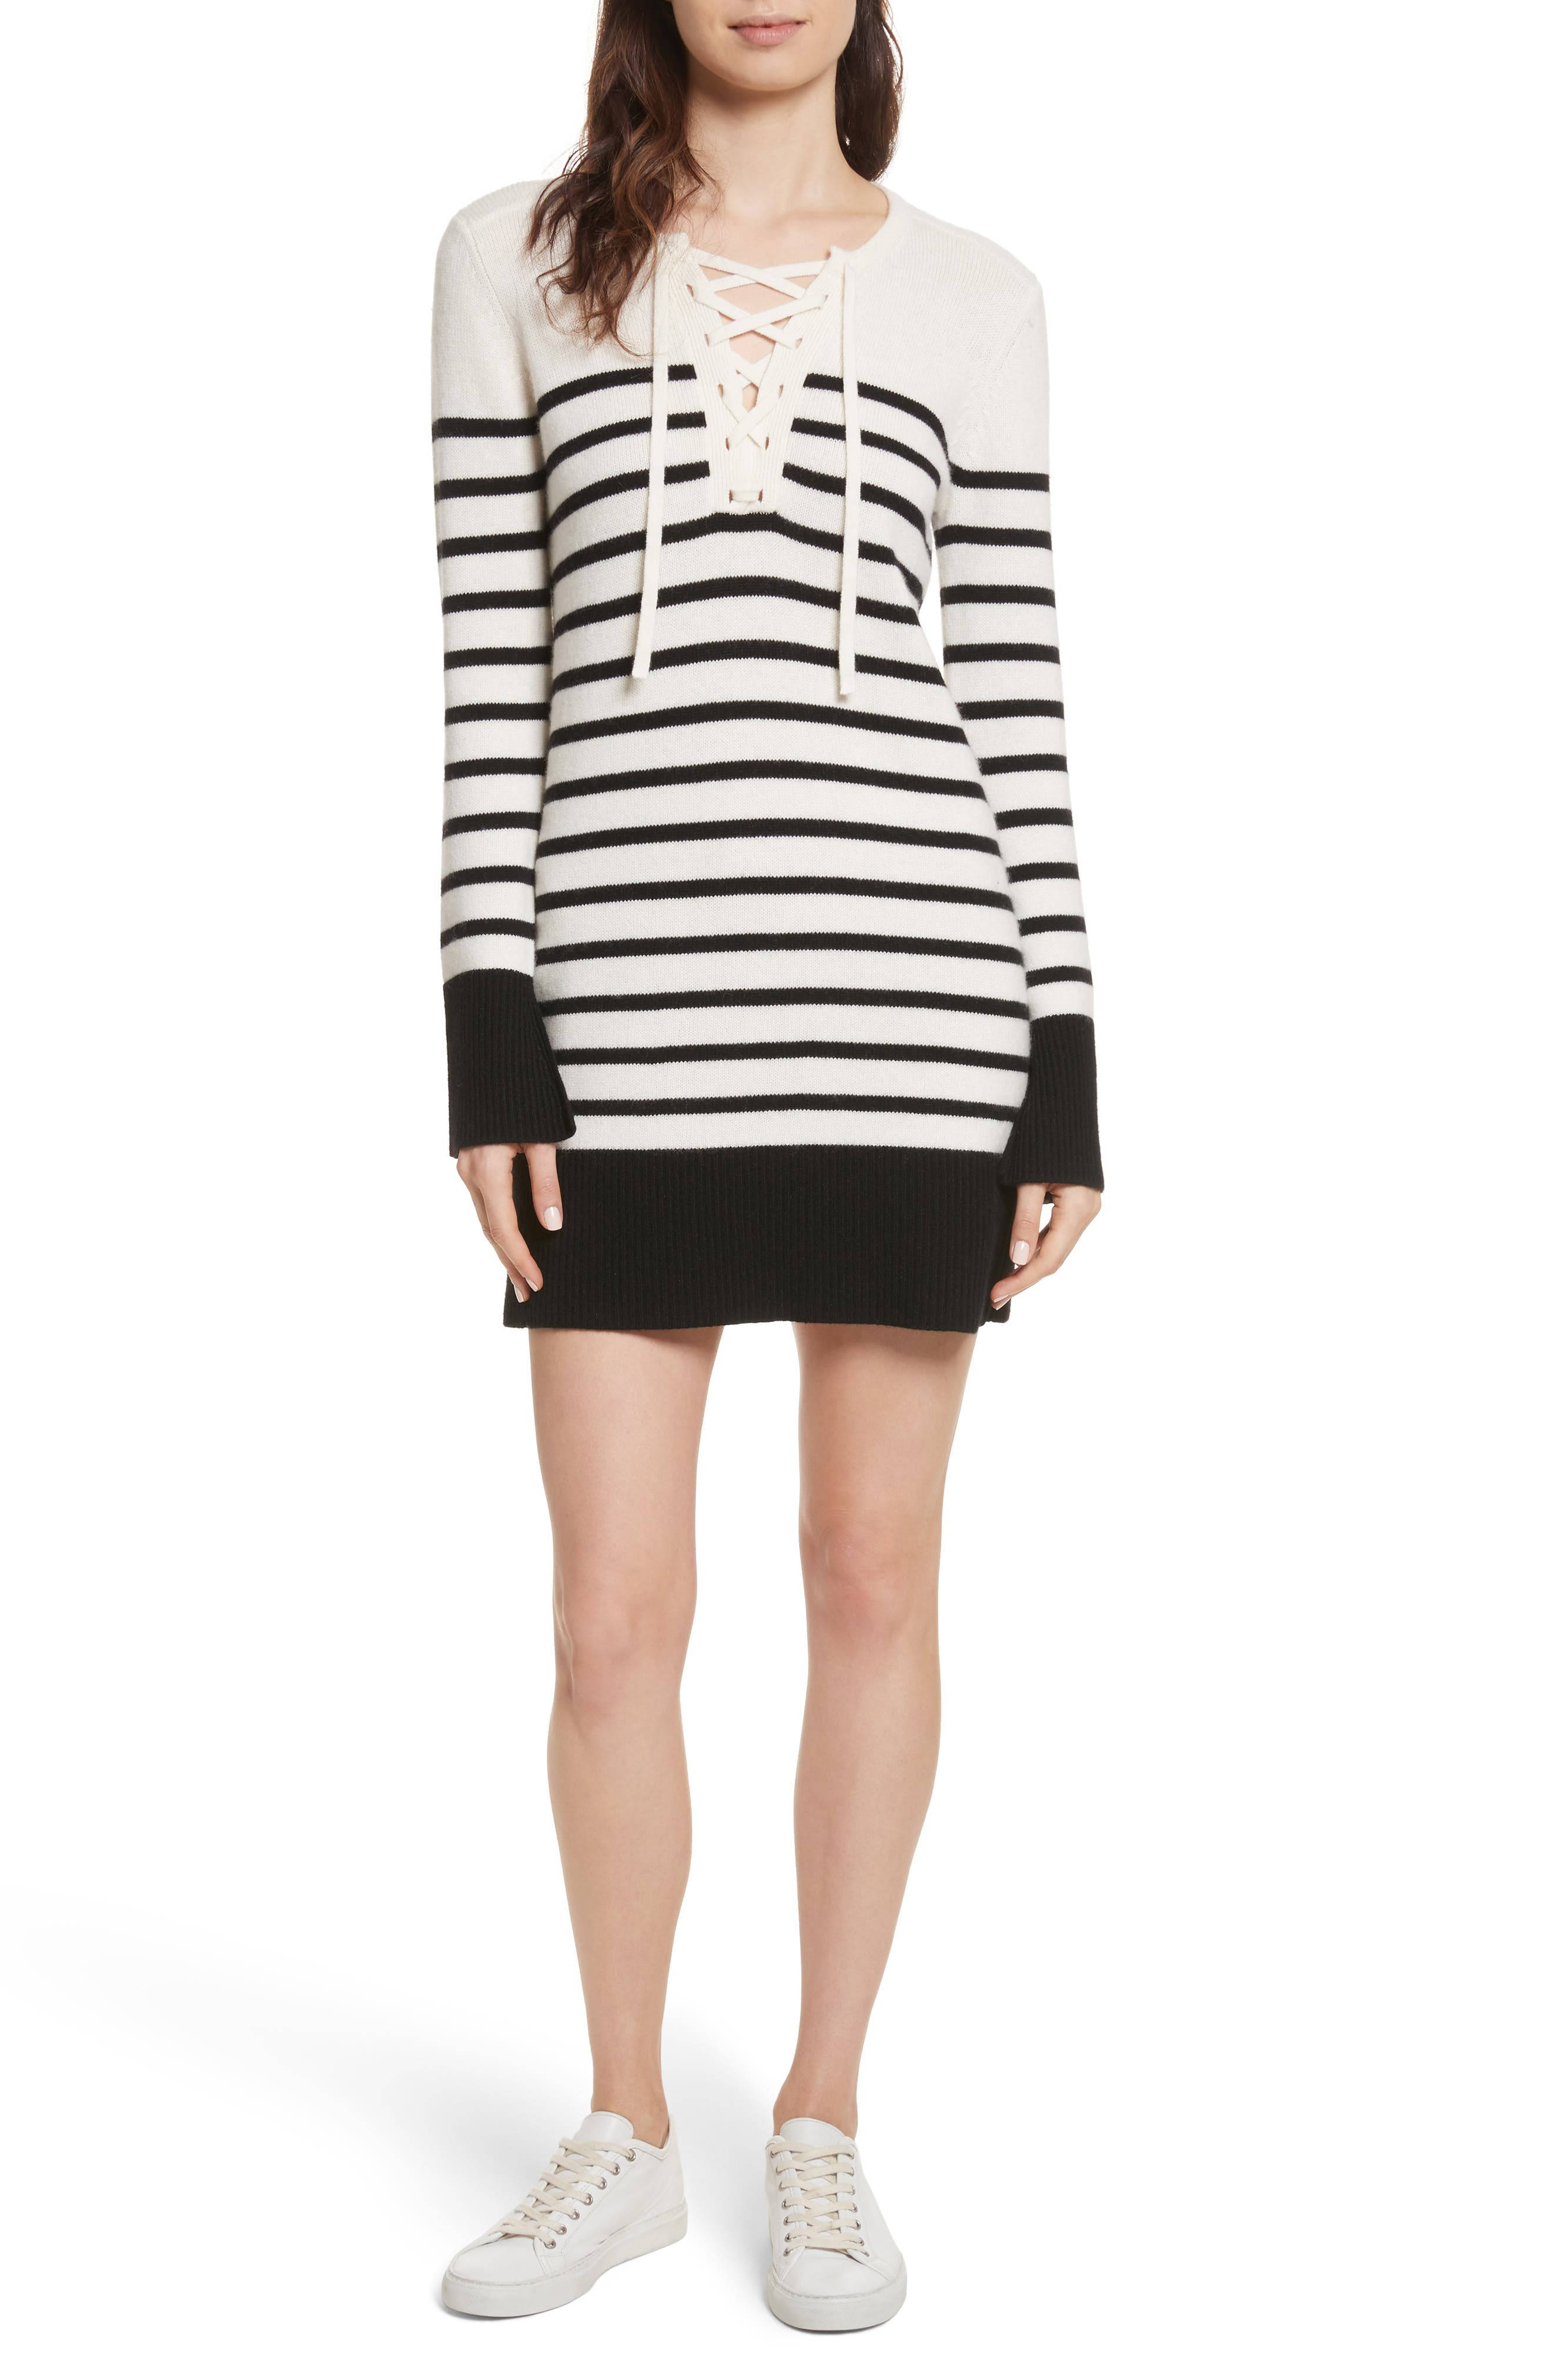 Alternate Image 1 Selected - Joie Heltan Wool & Cashmere Sweater Dress